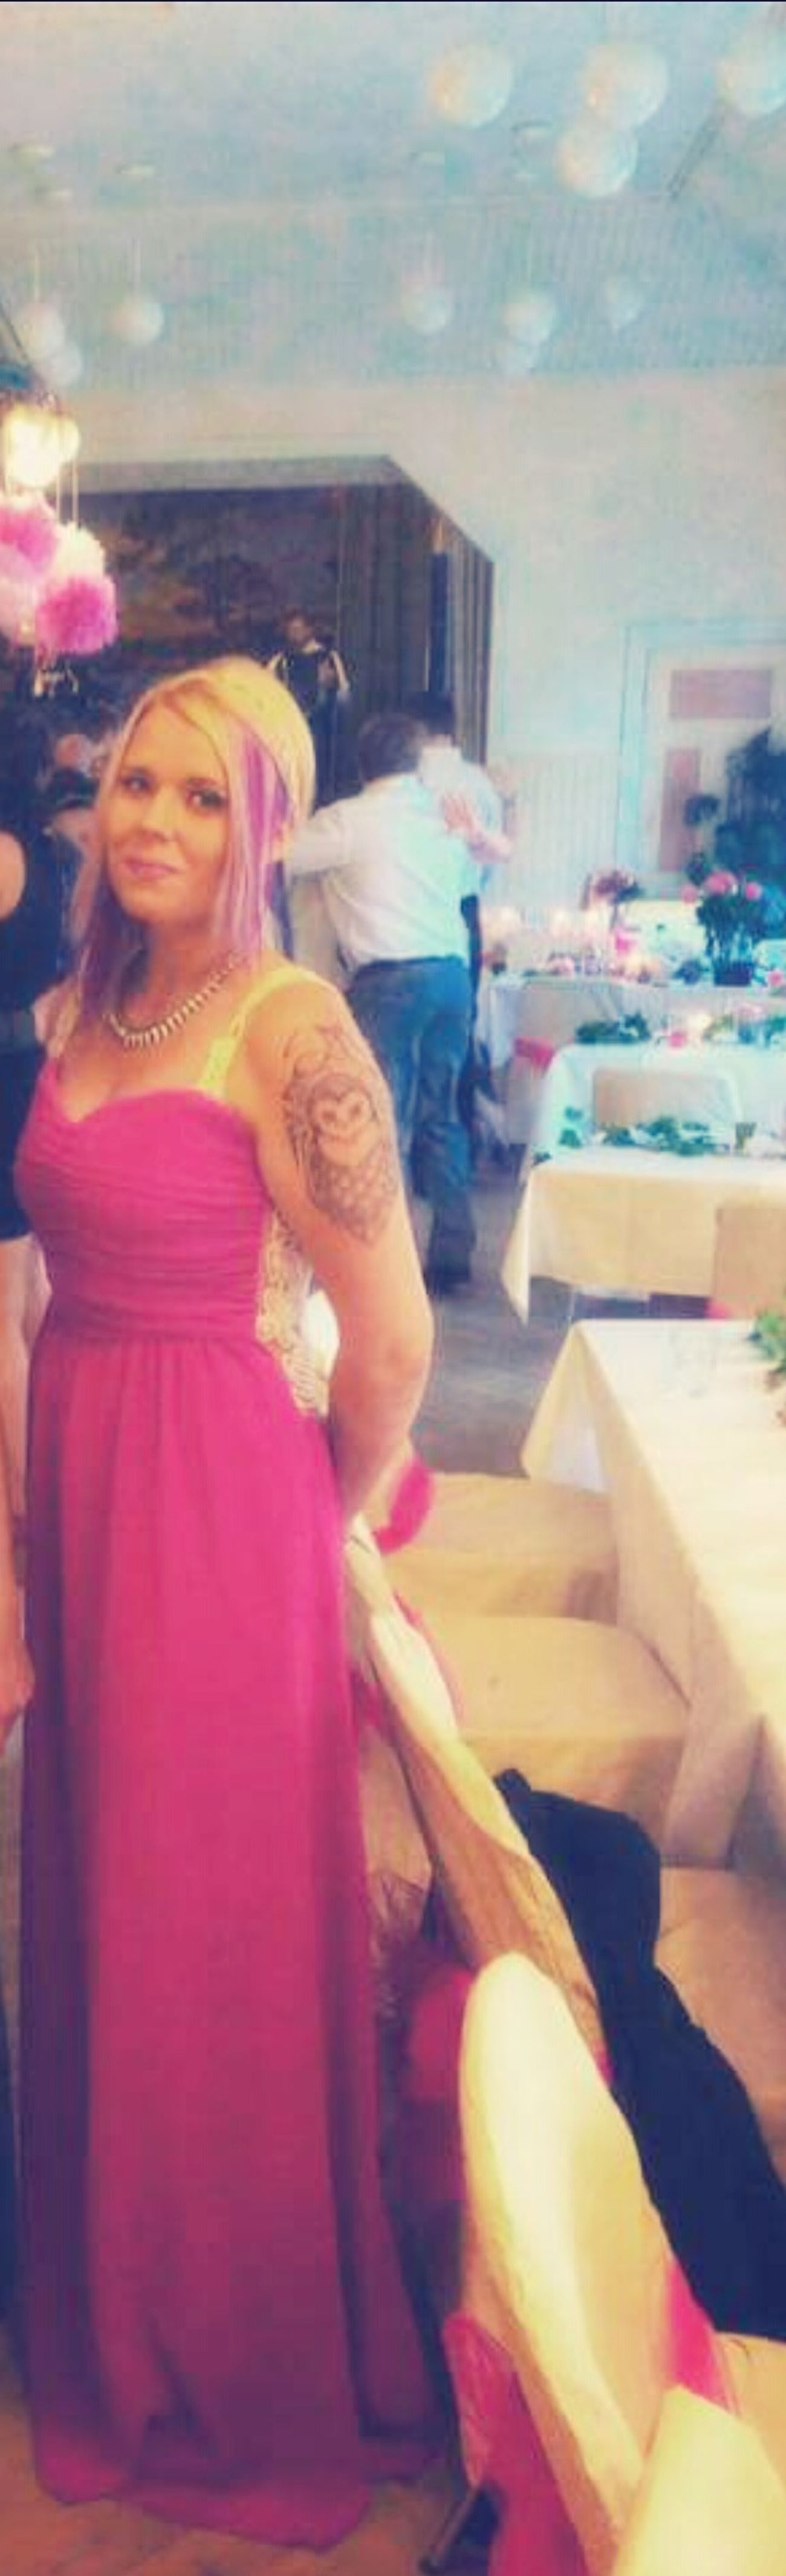 Me Myself Lovemydress